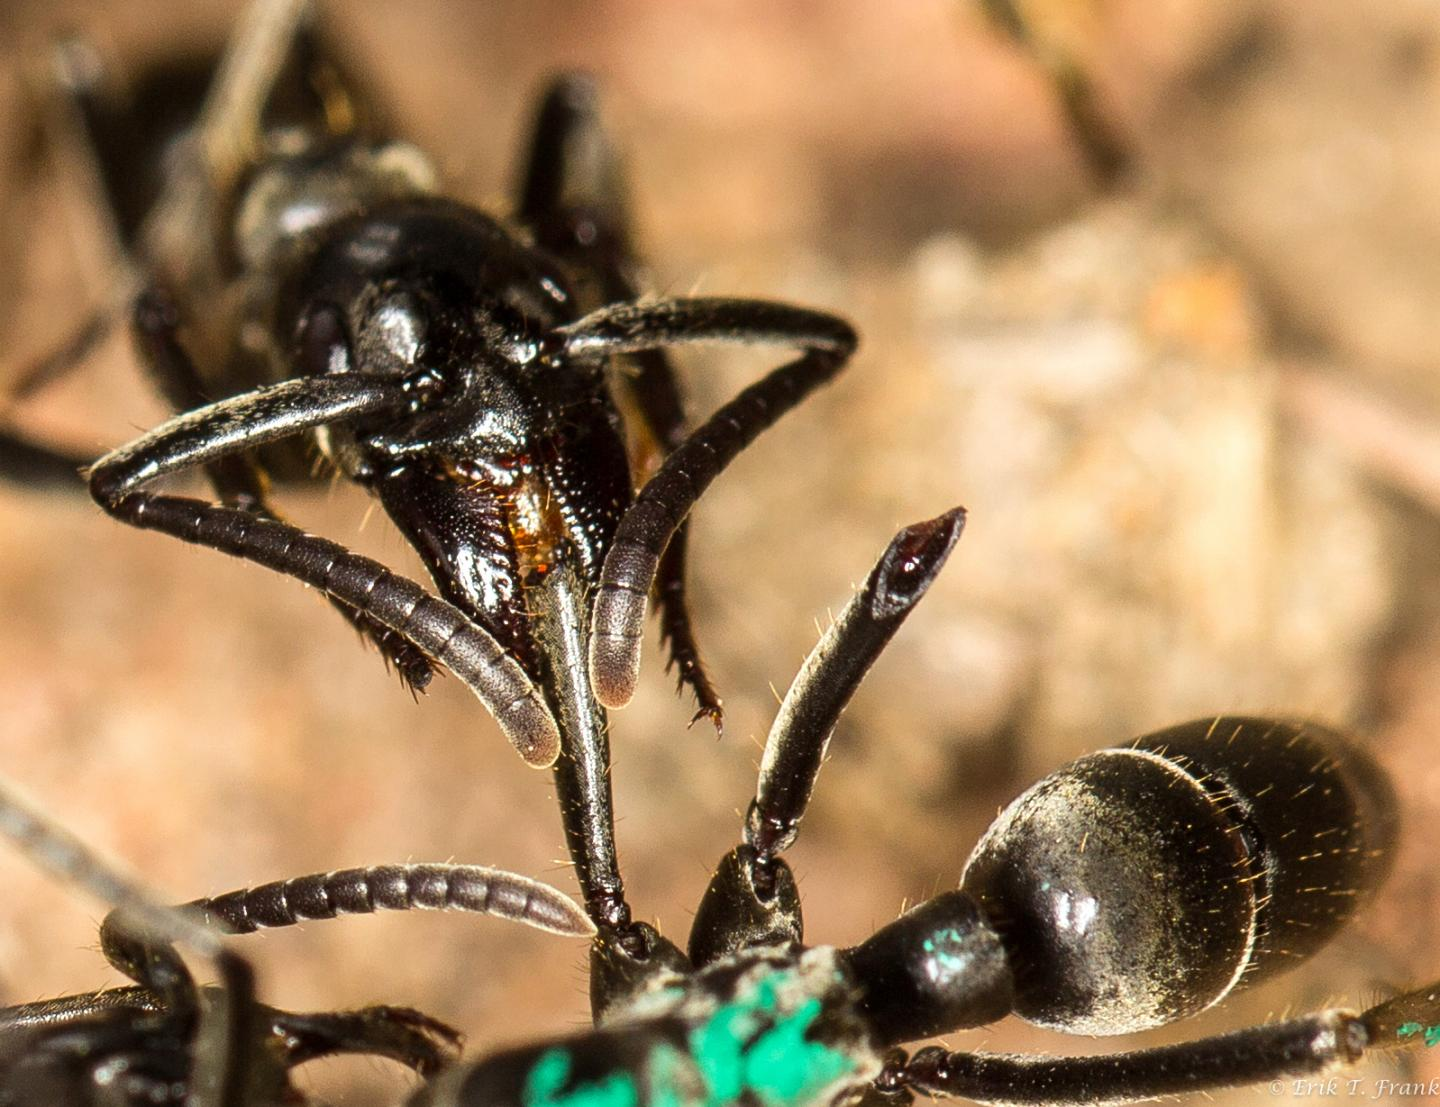 A Matabele ant treats the wounds of a mate whose limbs were bitten off during a fight with termite soldiers.